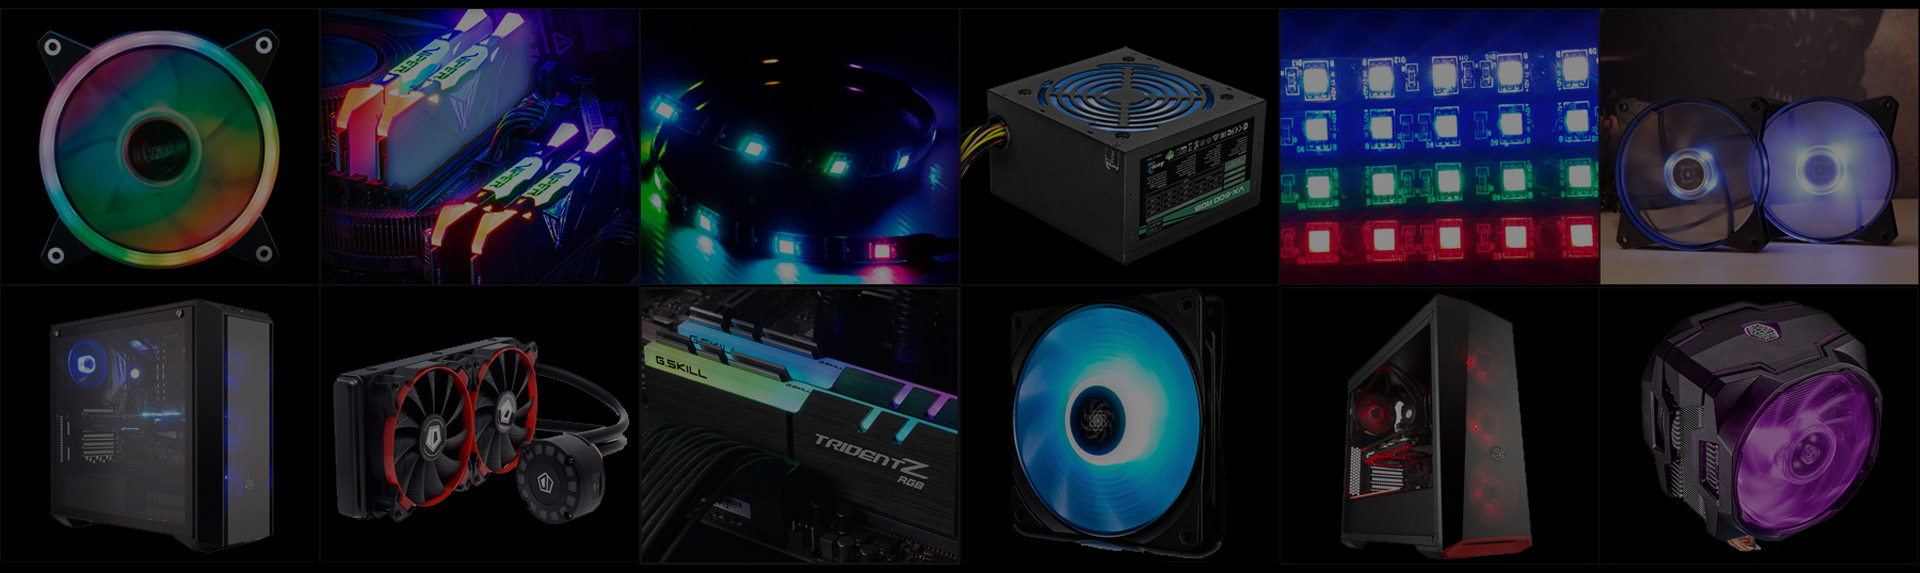 RGB_accessories and components for the ASRock Phantom Gaming 4 WiFi ax Motherboard